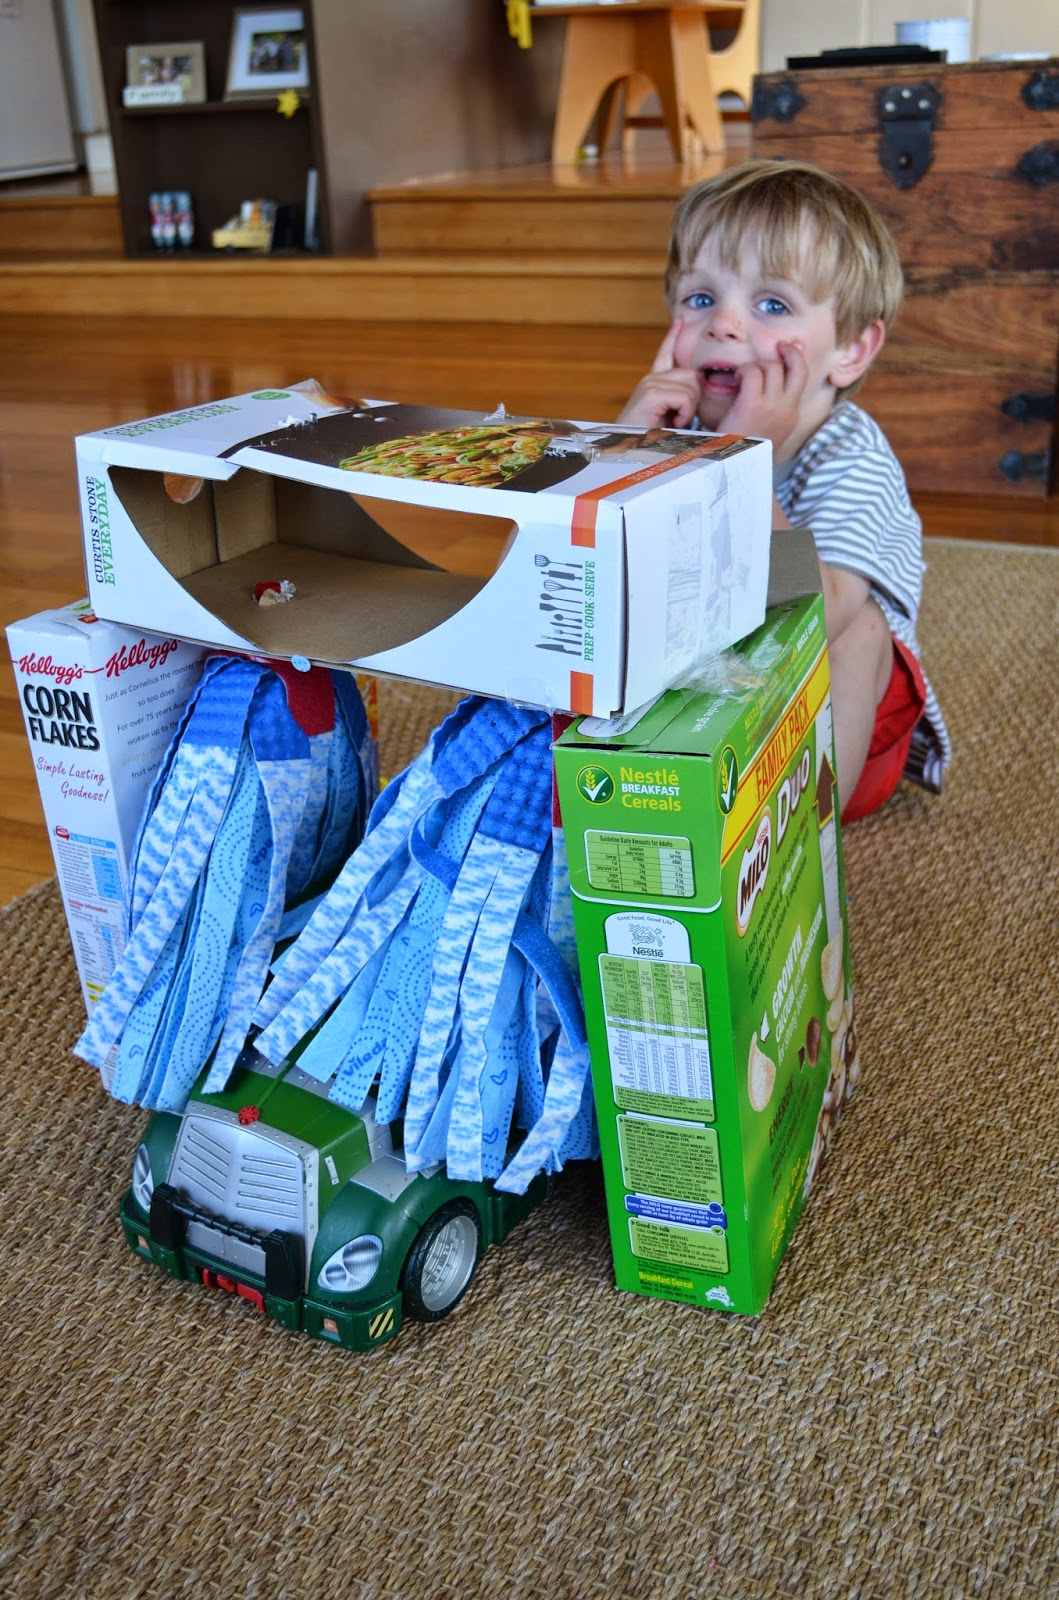 10 Ideas About Cardboard Box Cars On Pinterest: Crafternoon Garden: Cardboard Box Car Wash